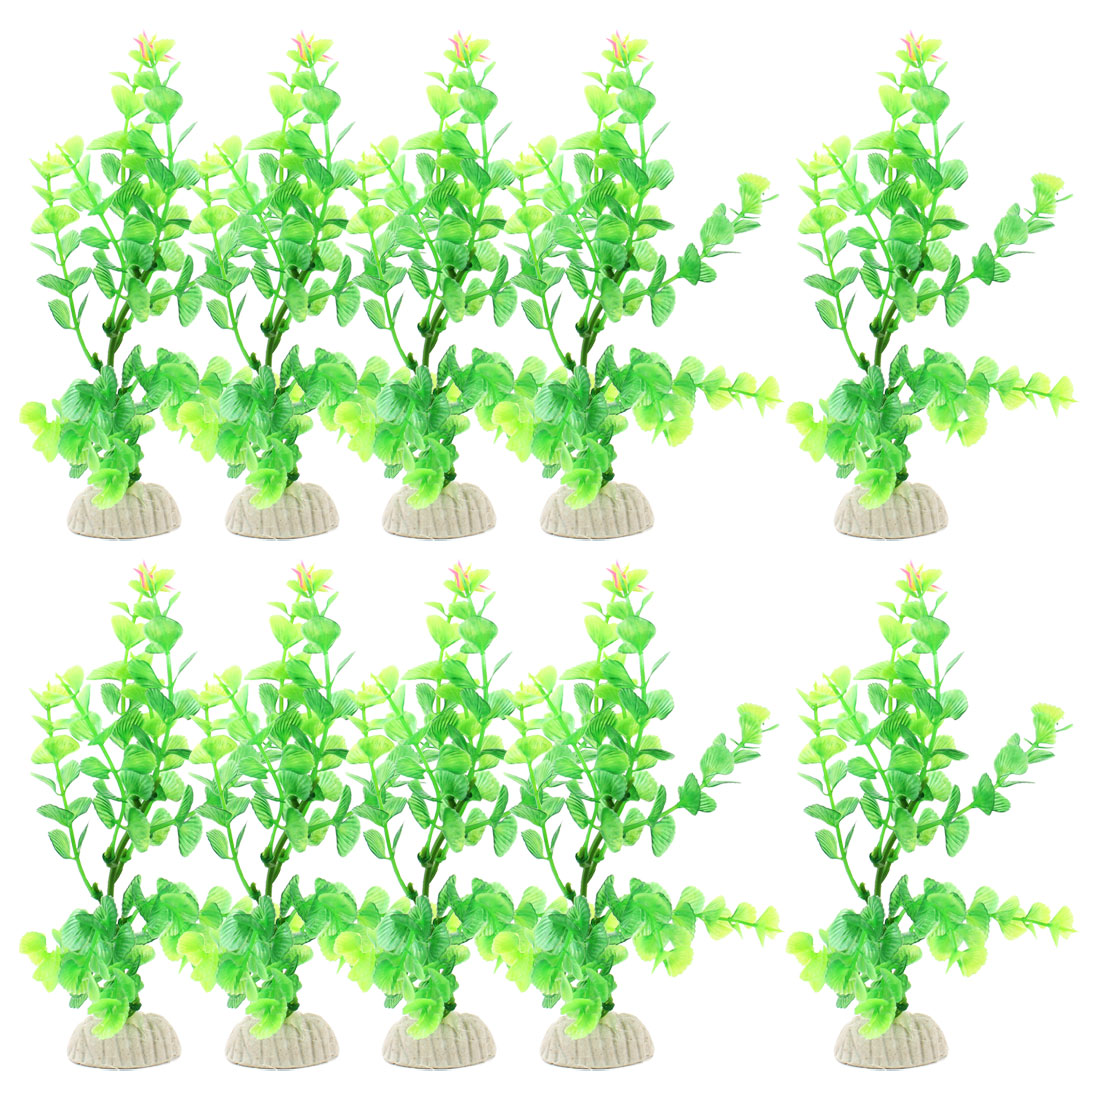 "7.9"" Height Green Plastic Grass Plant Adorning Fish Aquarium Landscape 10 Pcs"